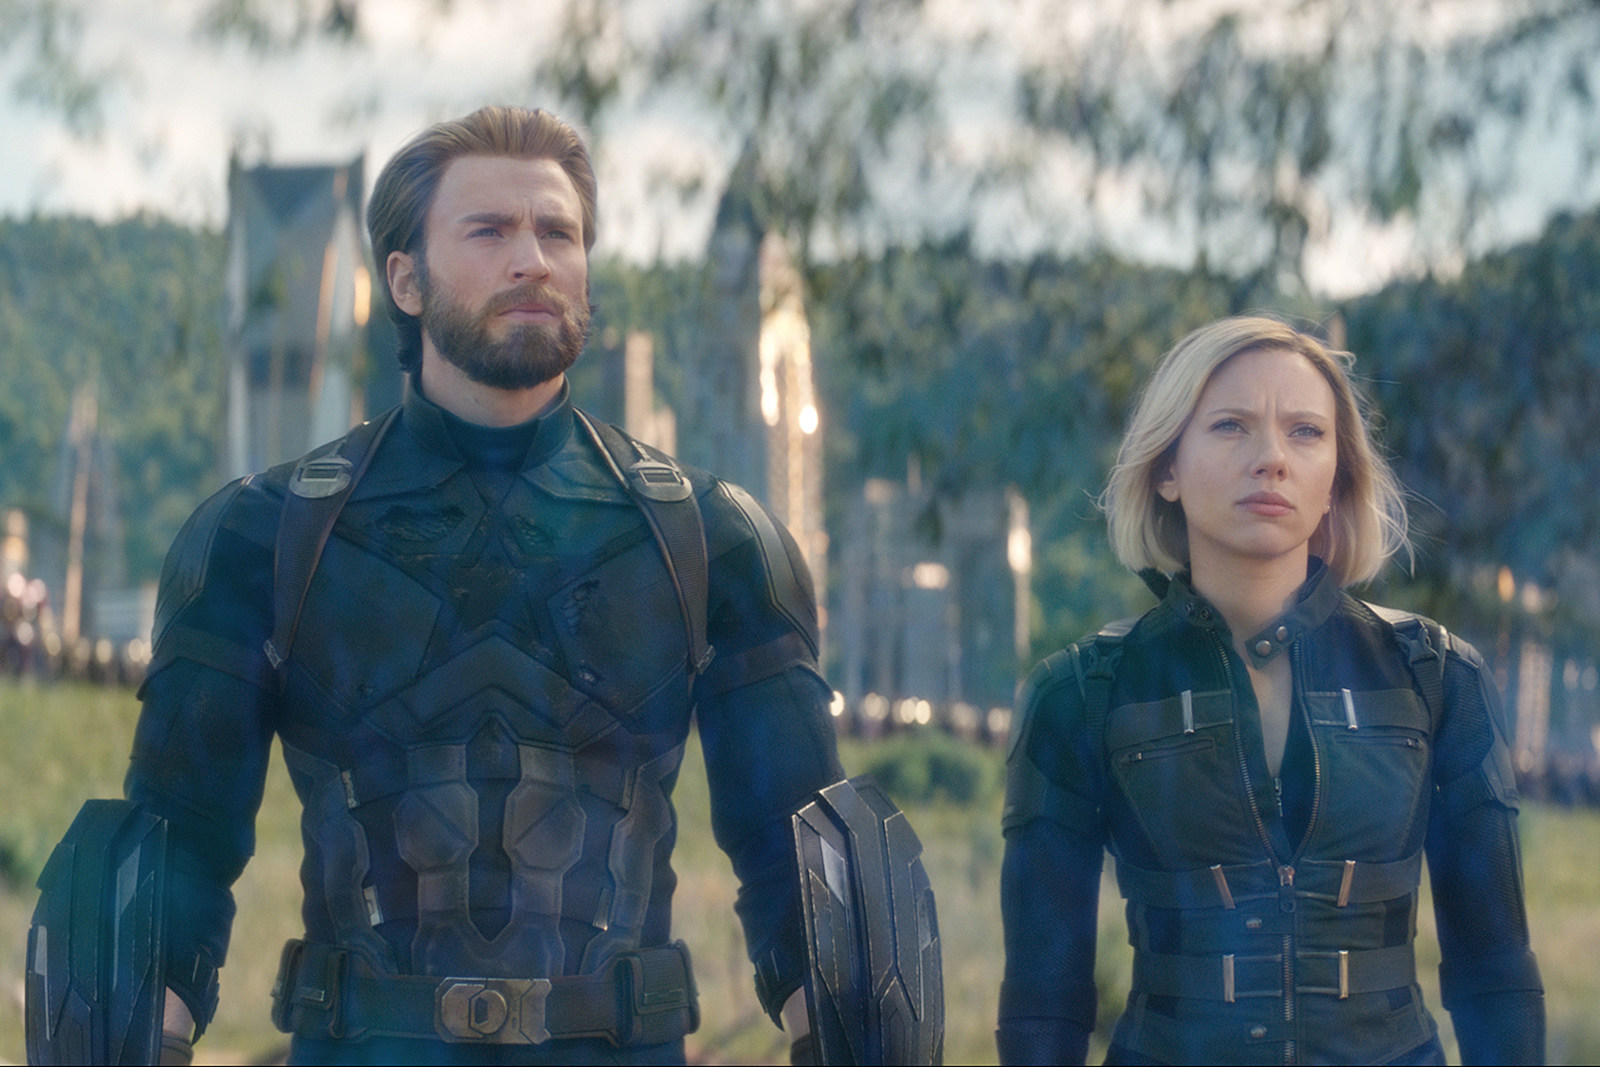 Captain America Almost Dressed As U S Agent In Infinity War